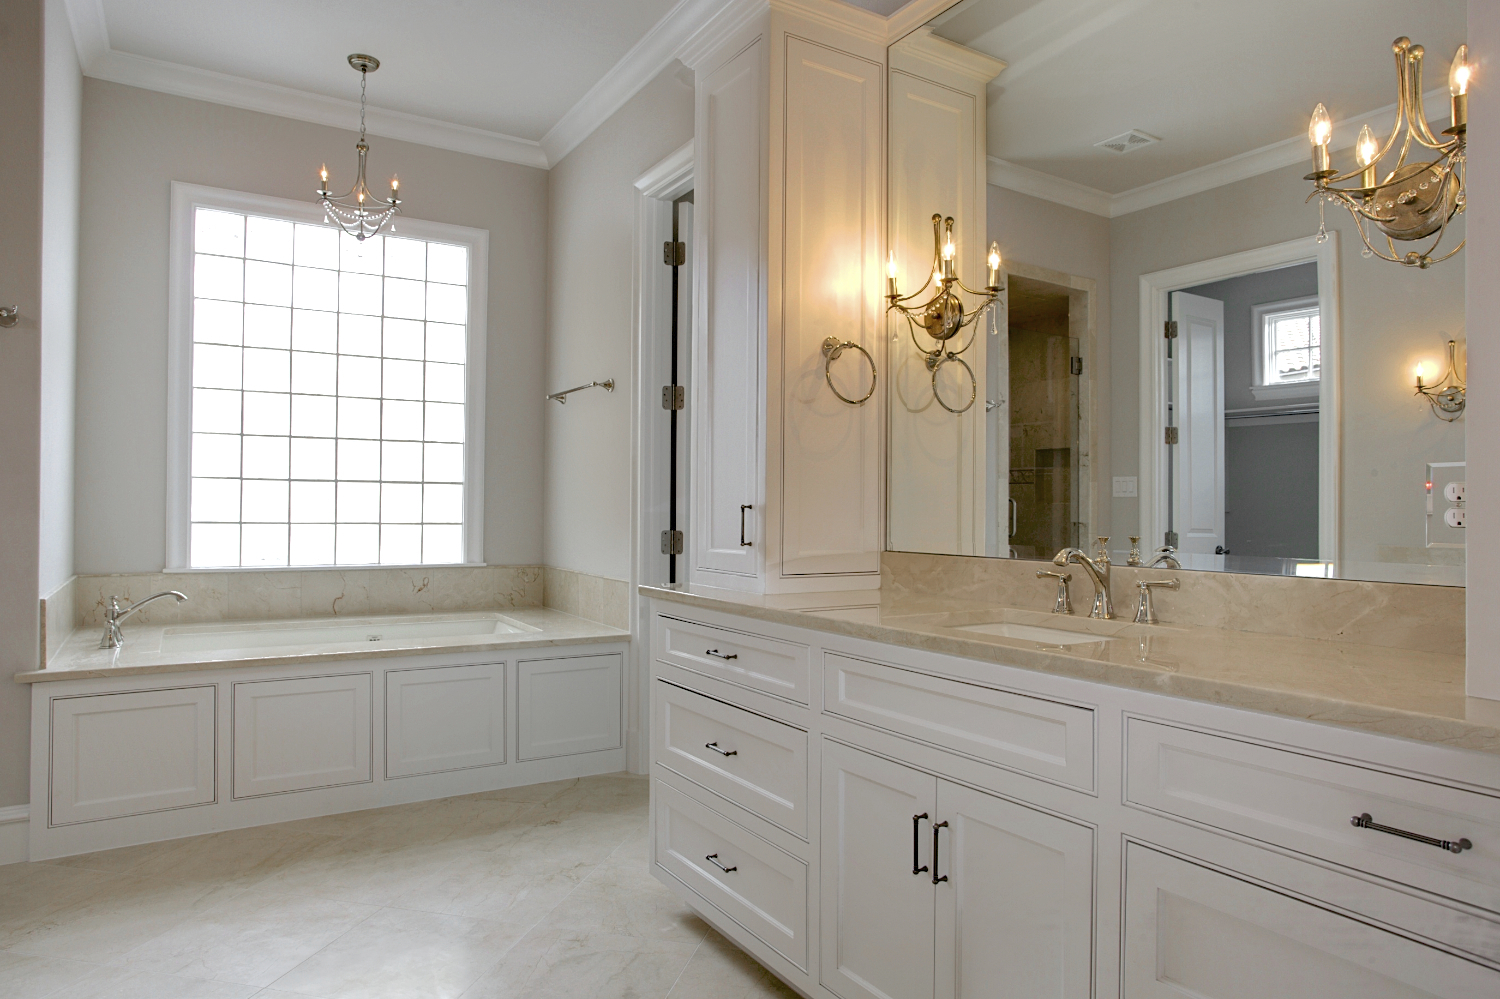 Bathroom Remodel Gallery bathroom remodeling in fort worth, texas with robinson builders